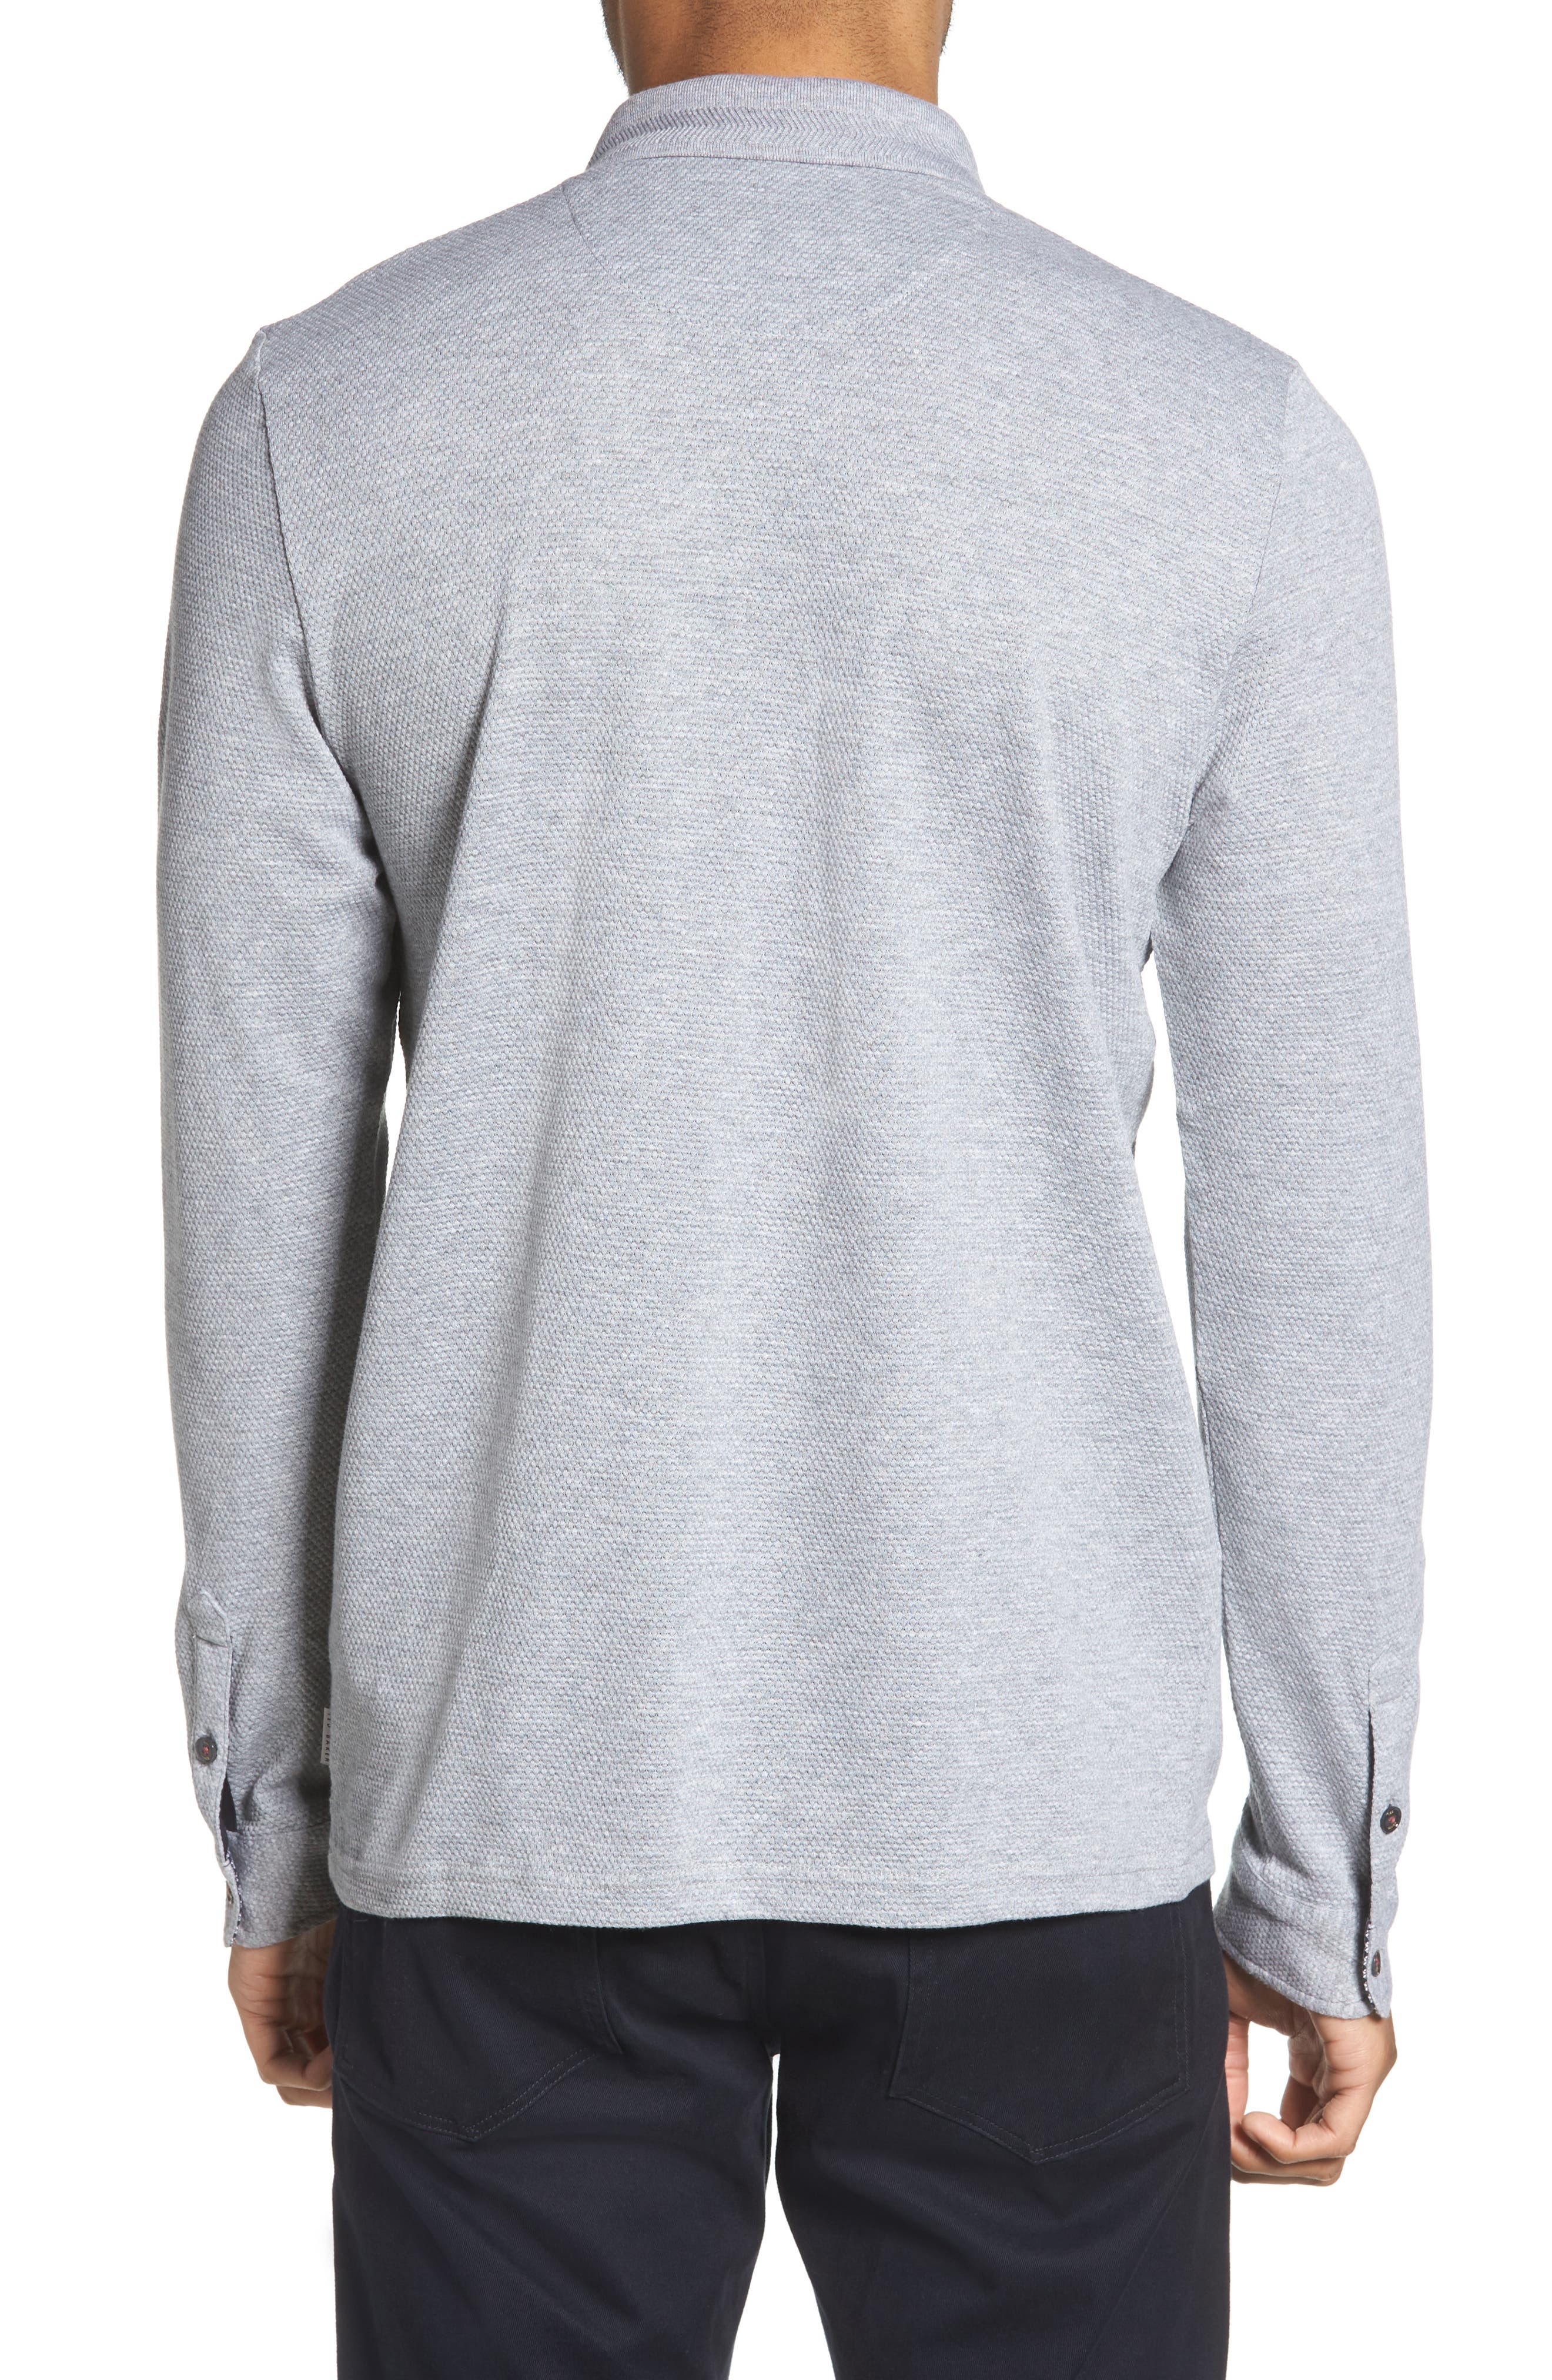 Scooby Trim Fit Long Sleeve Polo Shirt,                             Alternate thumbnail 2, color,                             Grey Marl